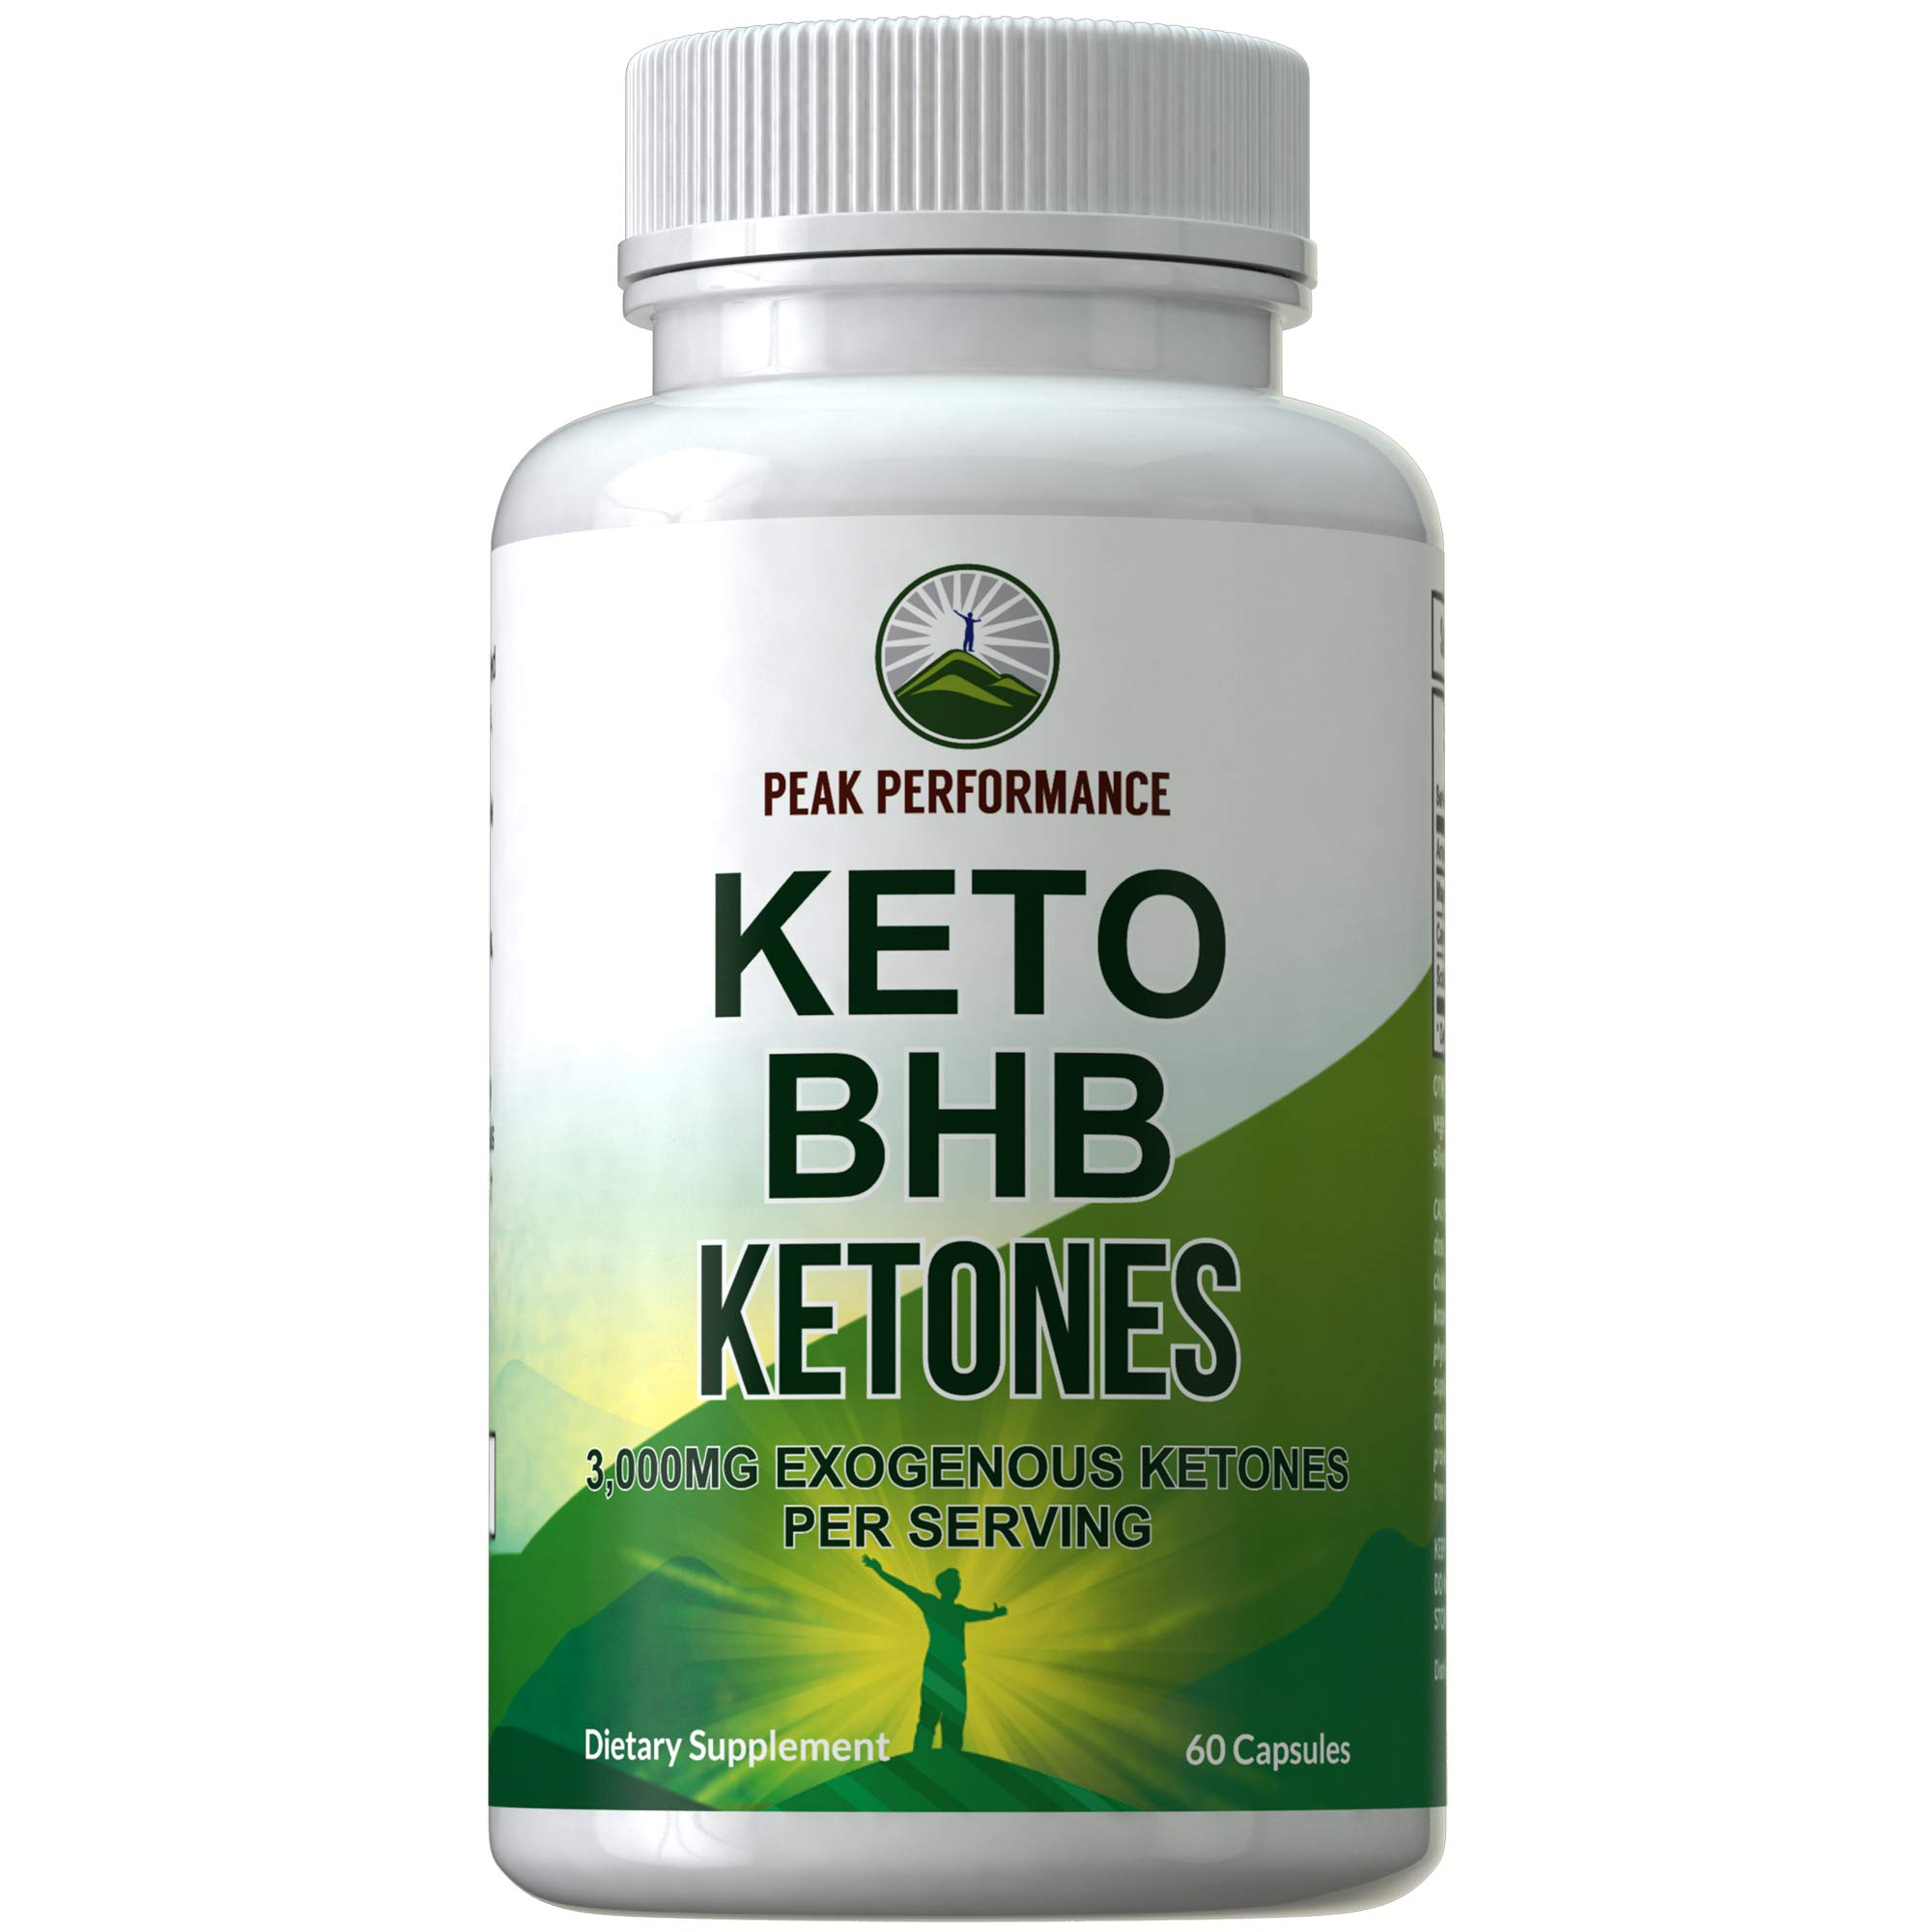 Keto BHB Exogenous Ketones Capsules by Peak Performance. Best Keto Diet Pills - 3000mg Unflavored Exogenous Ketone Salts Supplement. Best 3 Beta Hydroxybutyrate Forms for Maintaining Ketosis by Peak Performance